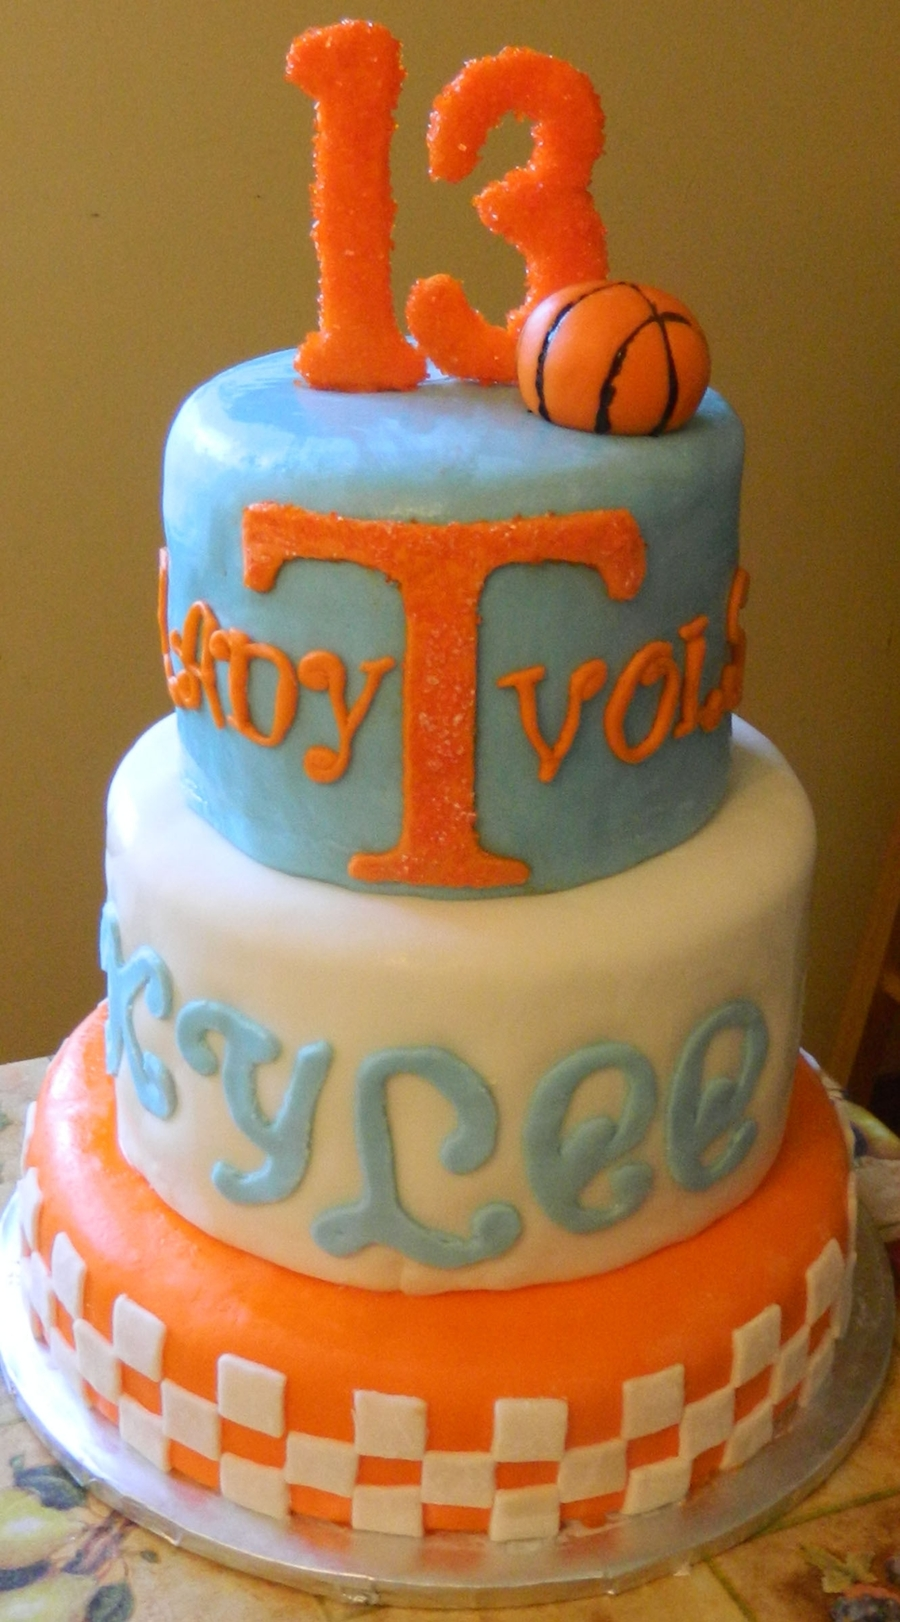 Lady Vols Cake on Cake Central